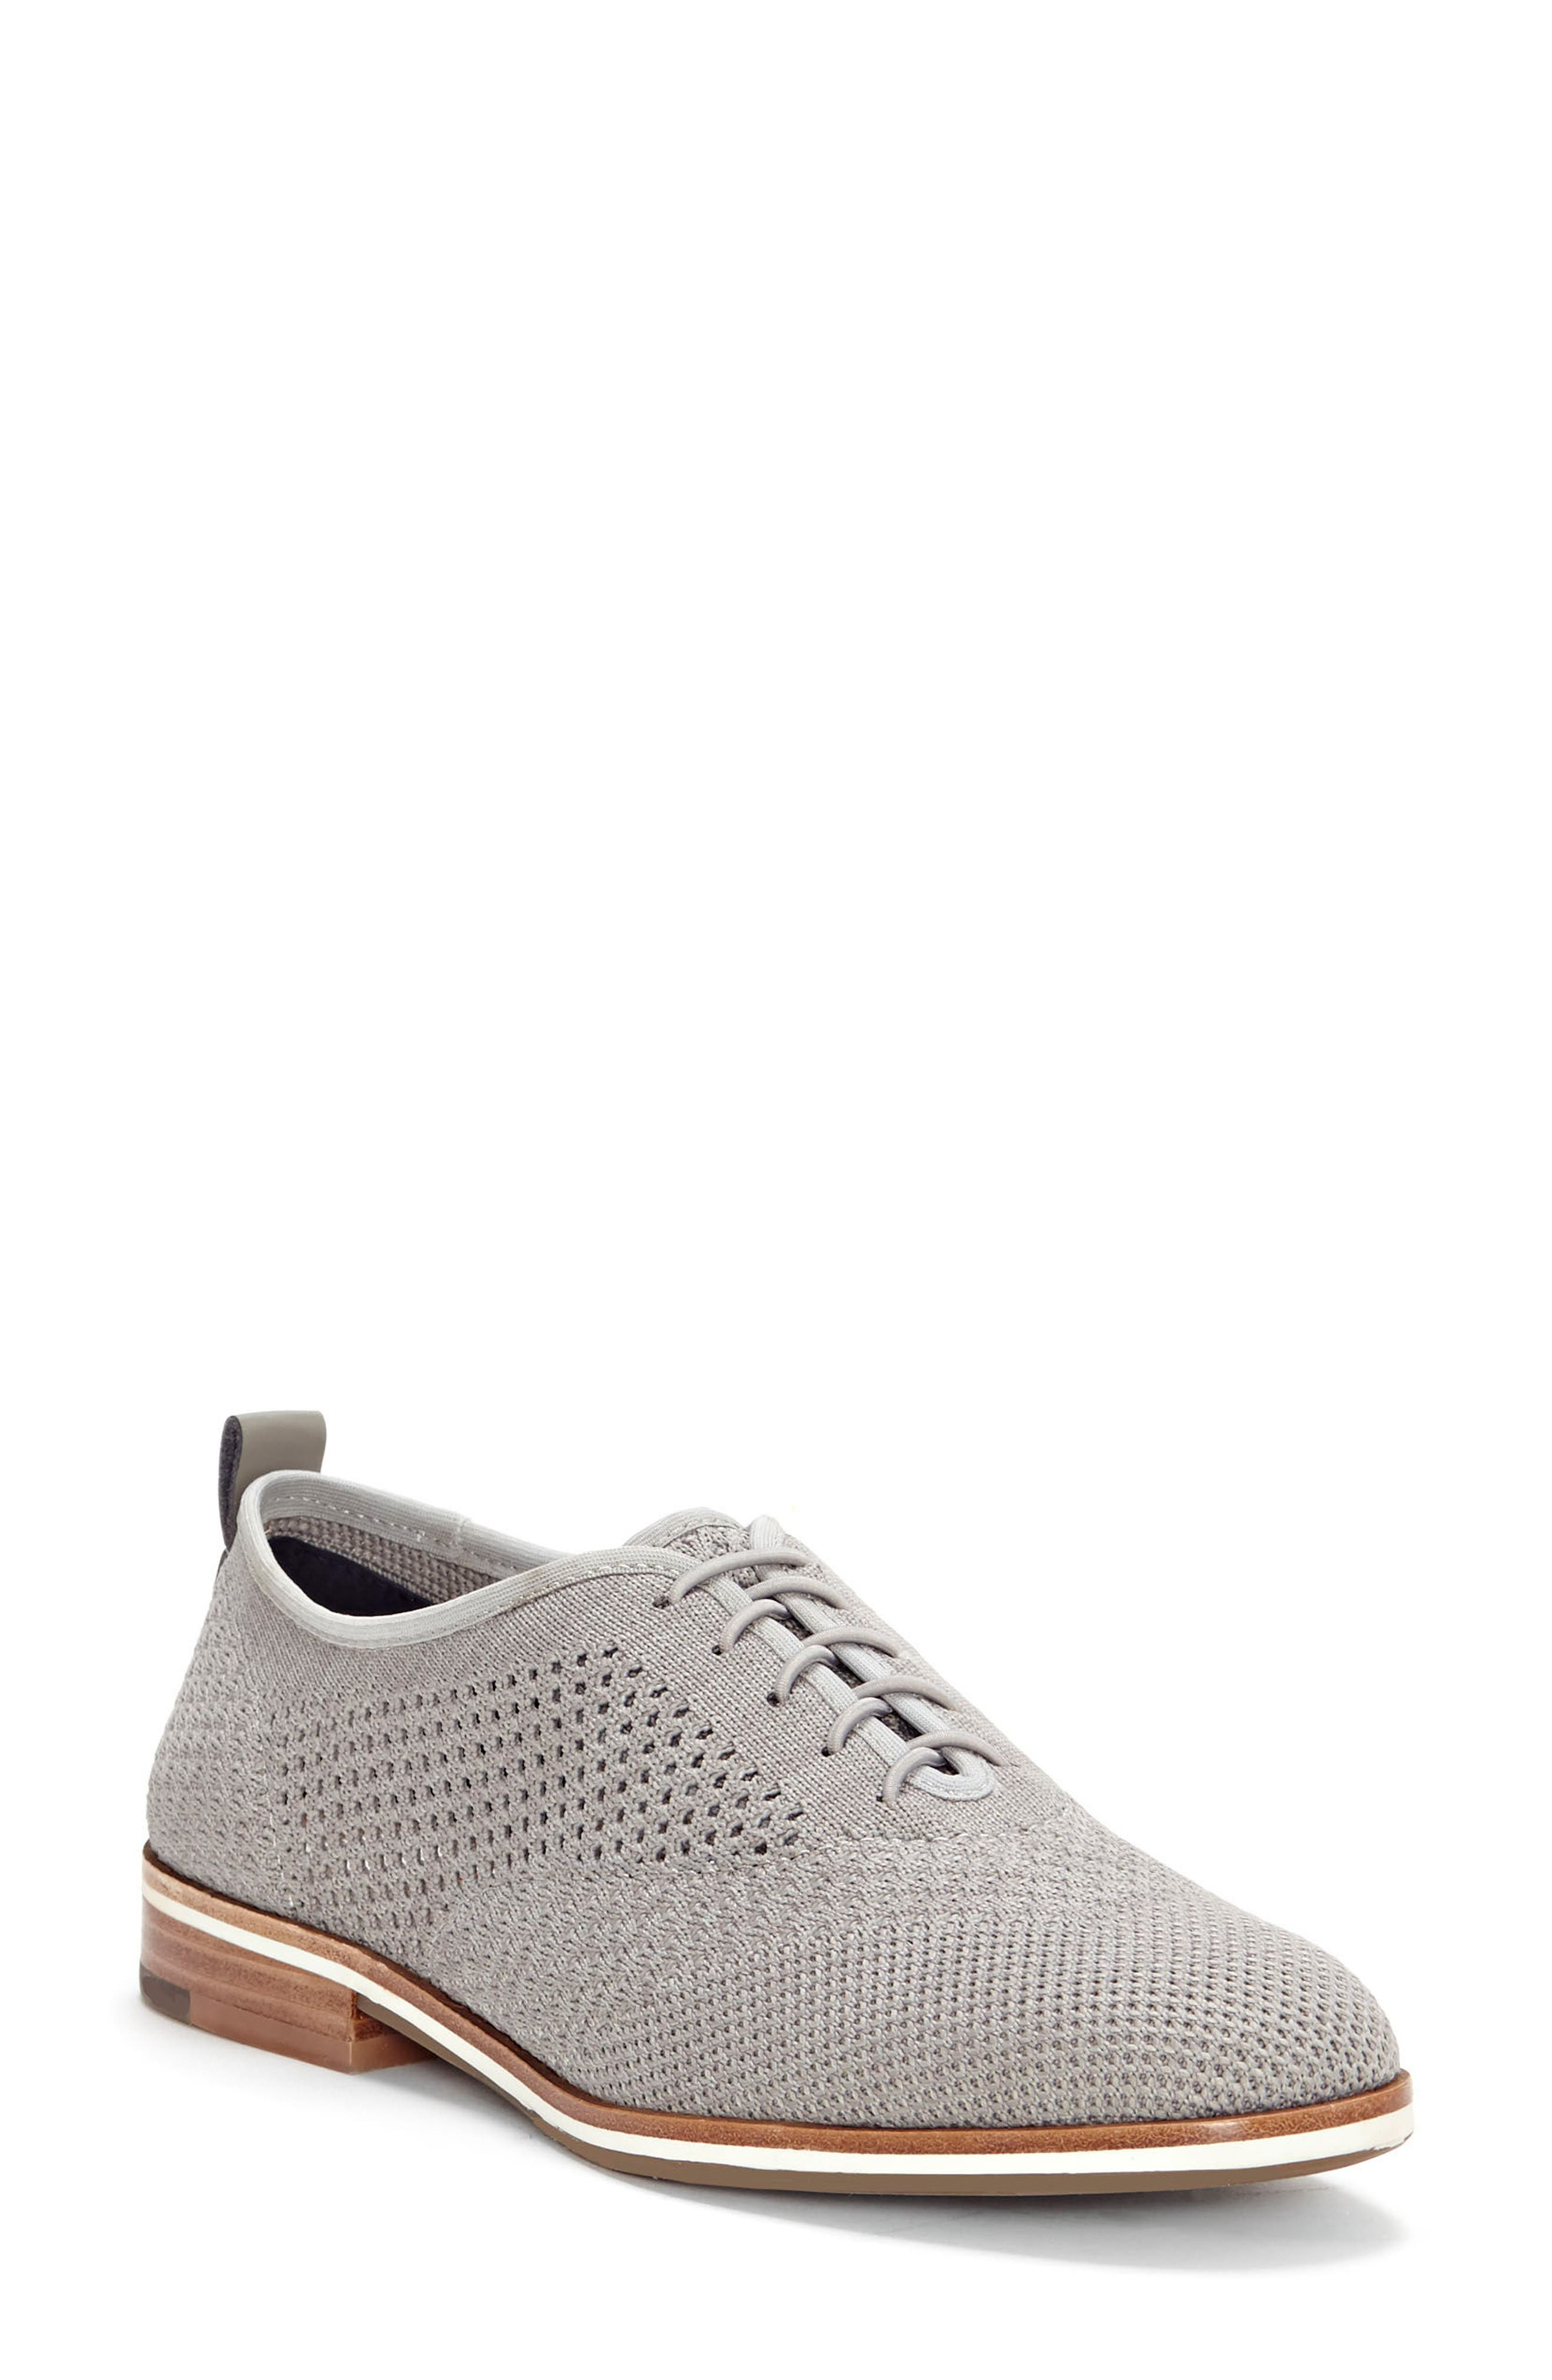 Lucerne Knit Oxford,                             Main thumbnail 1, color,                             HEATHER GREY TEXTILE FABRIC